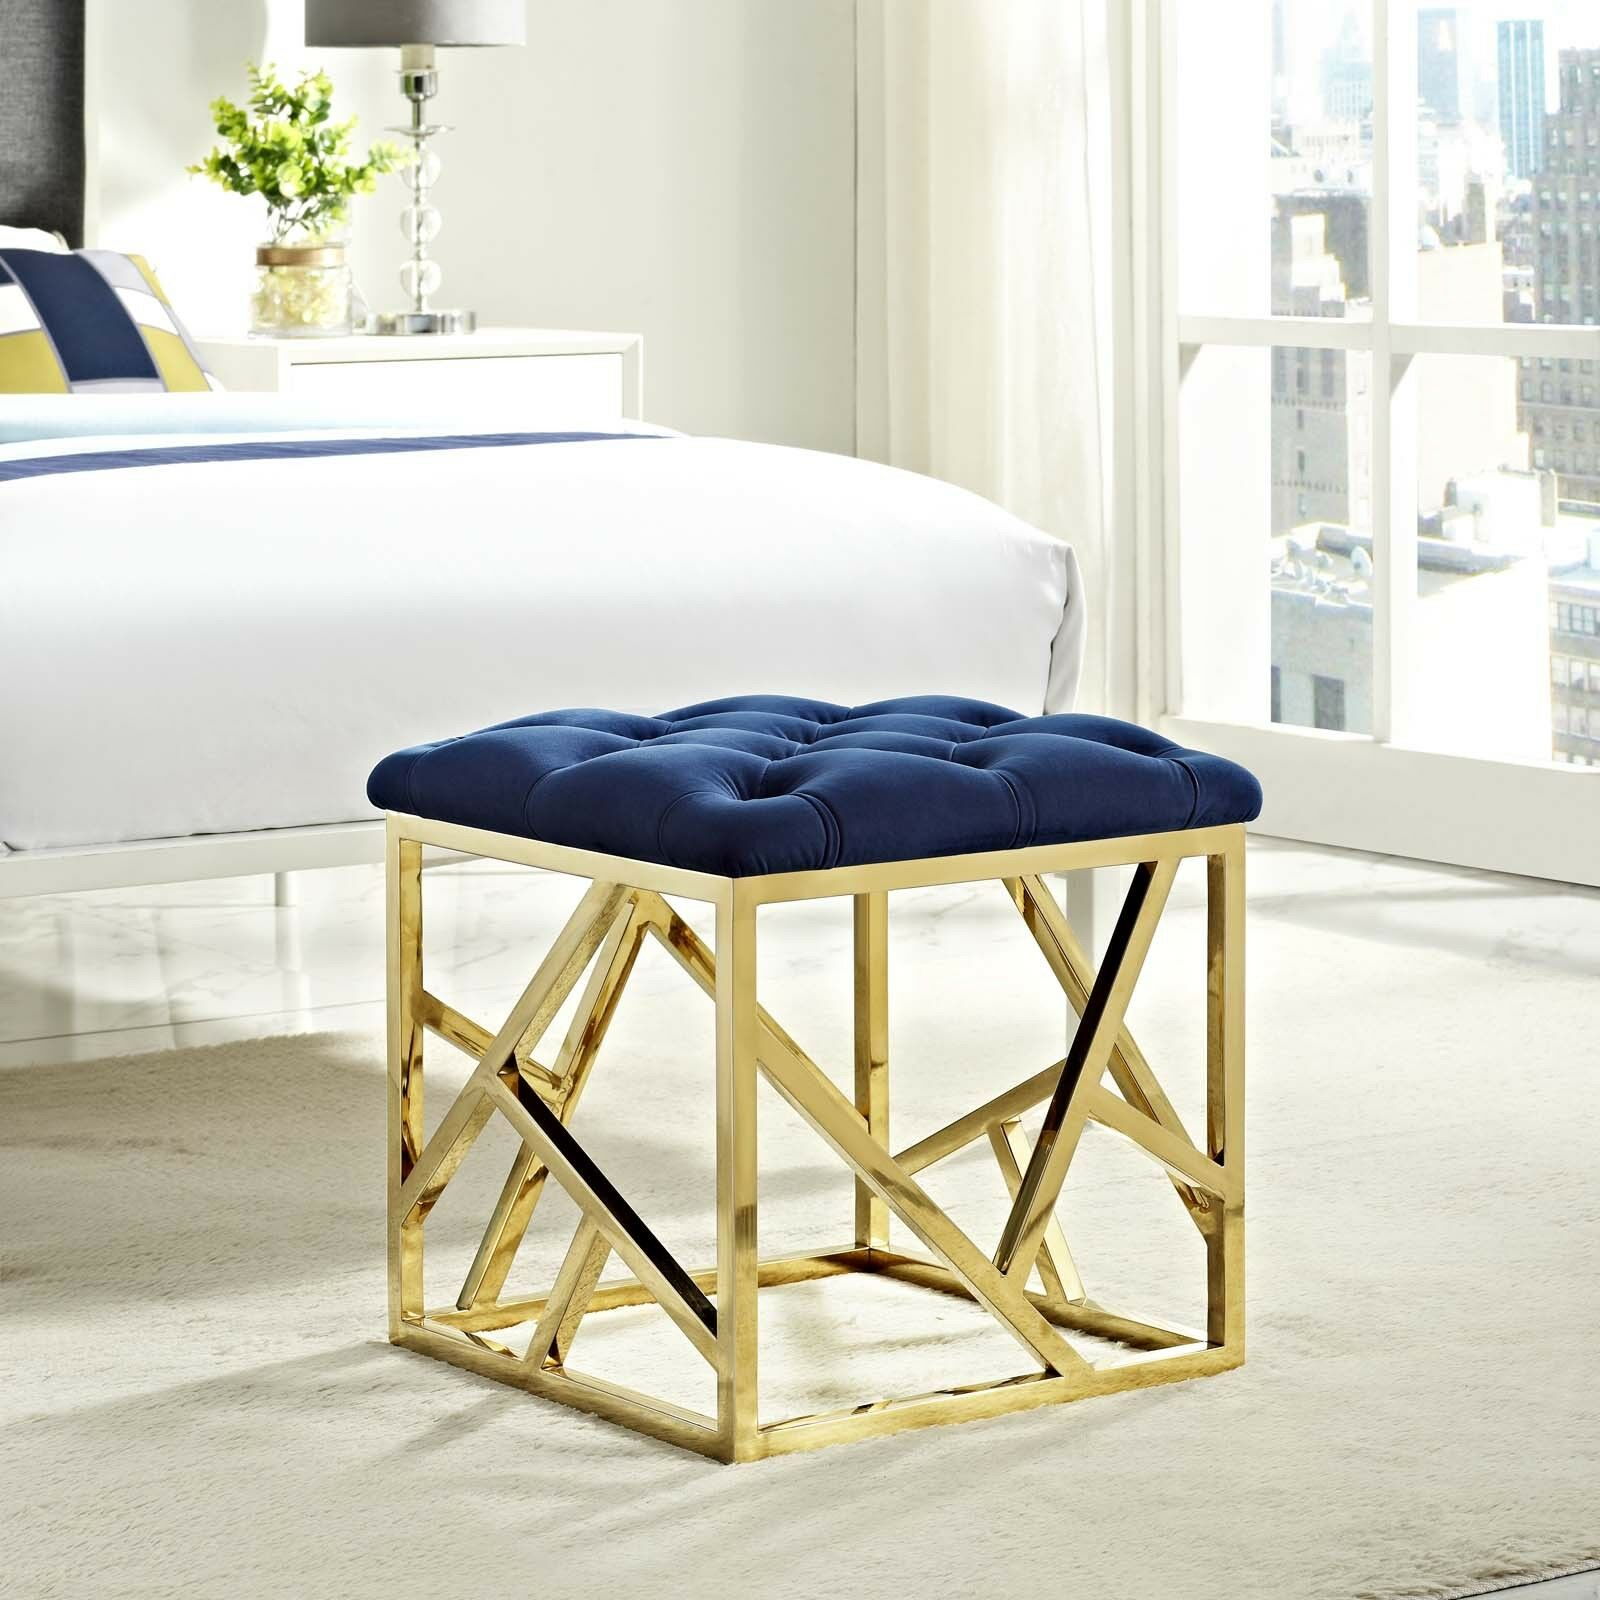 Fine Details About Contemporary Modern Tufted Velvet Geometric Metal Ottoman Bench In Gold Navy Pdpeps Interior Chair Design Pdpepsorg